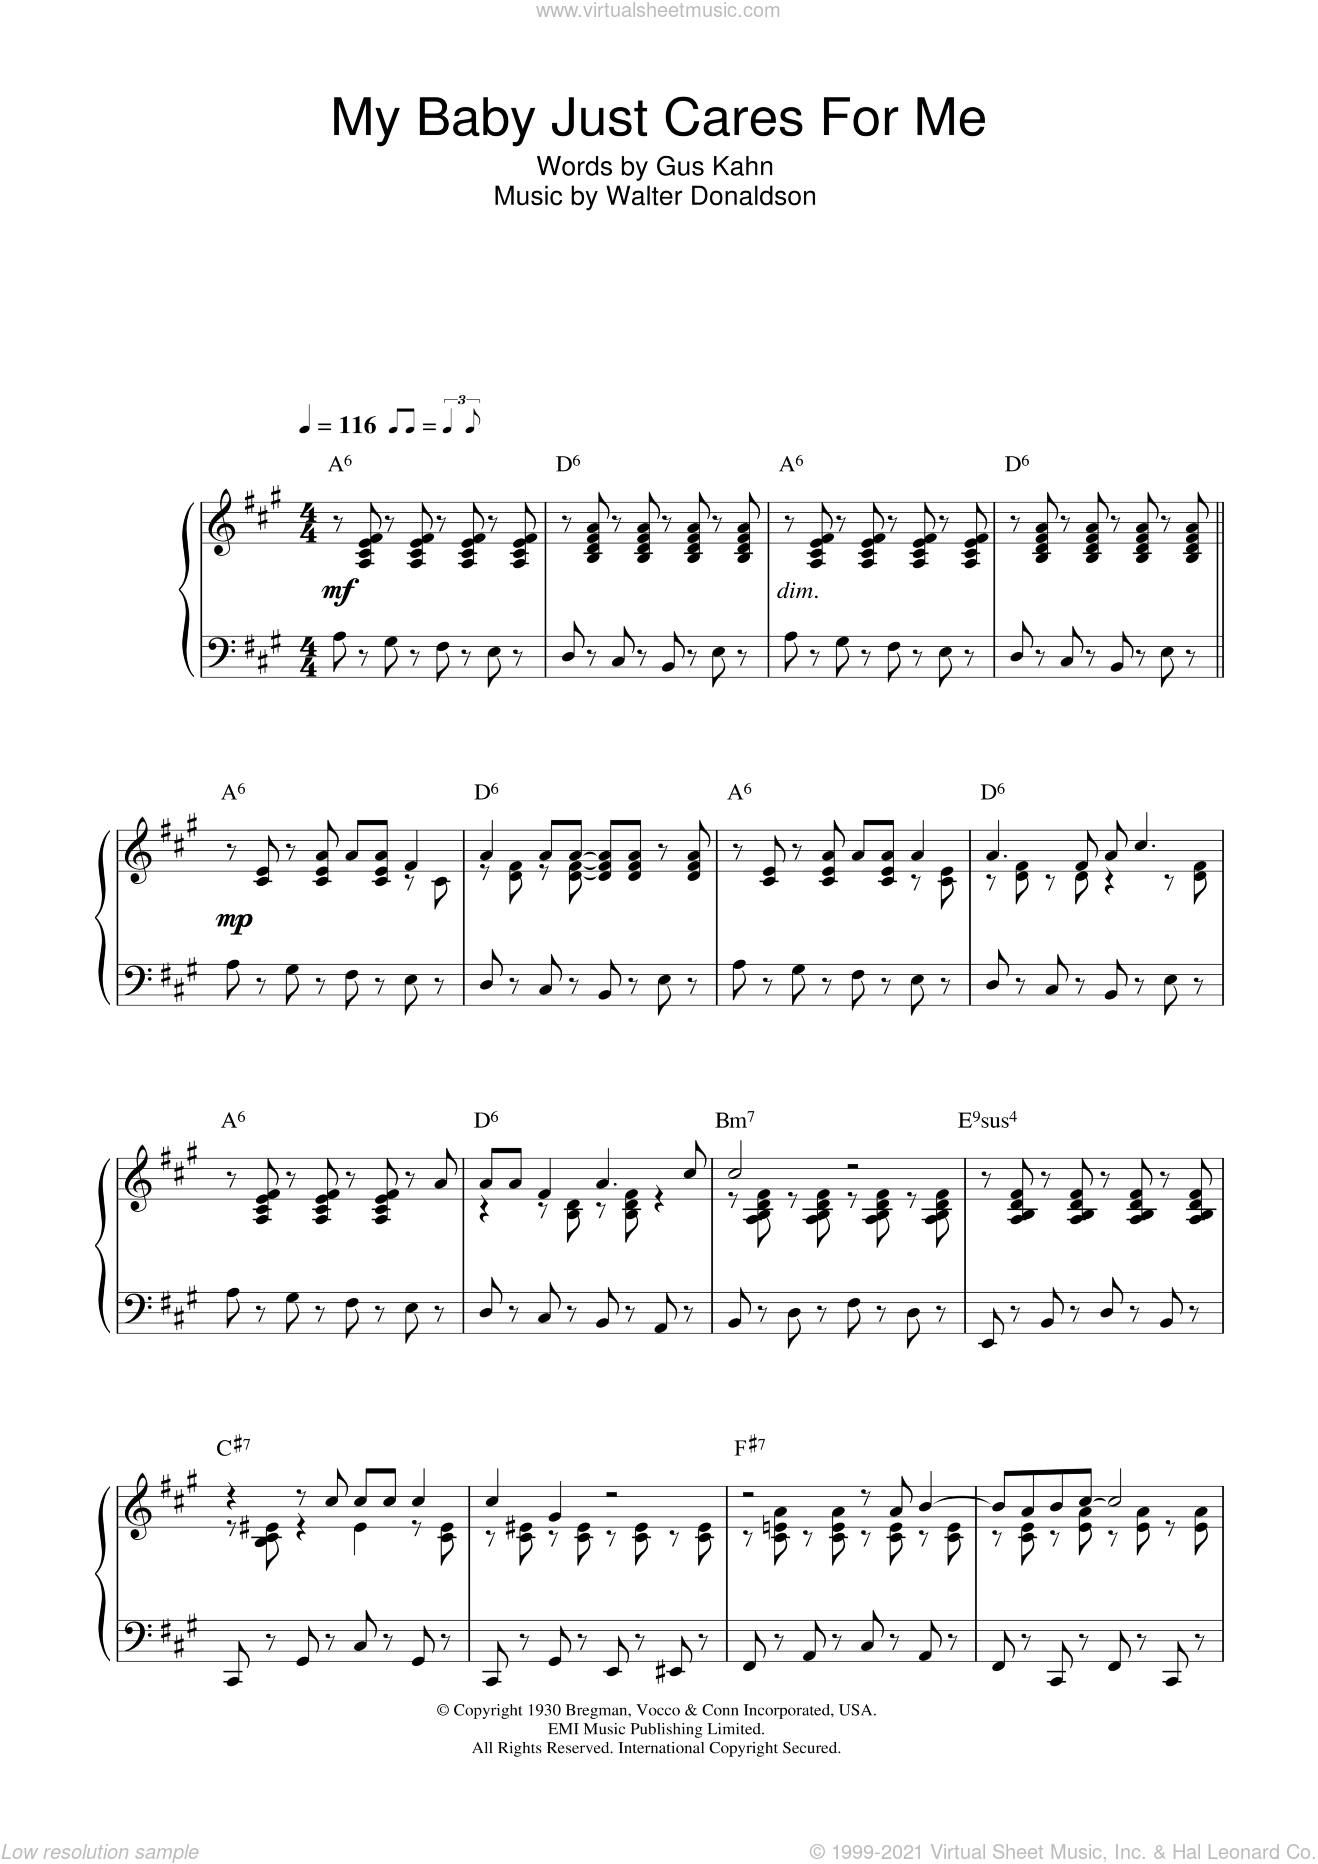 My Baby Just Cares For Me sheet music for piano solo by Walter Donaldson